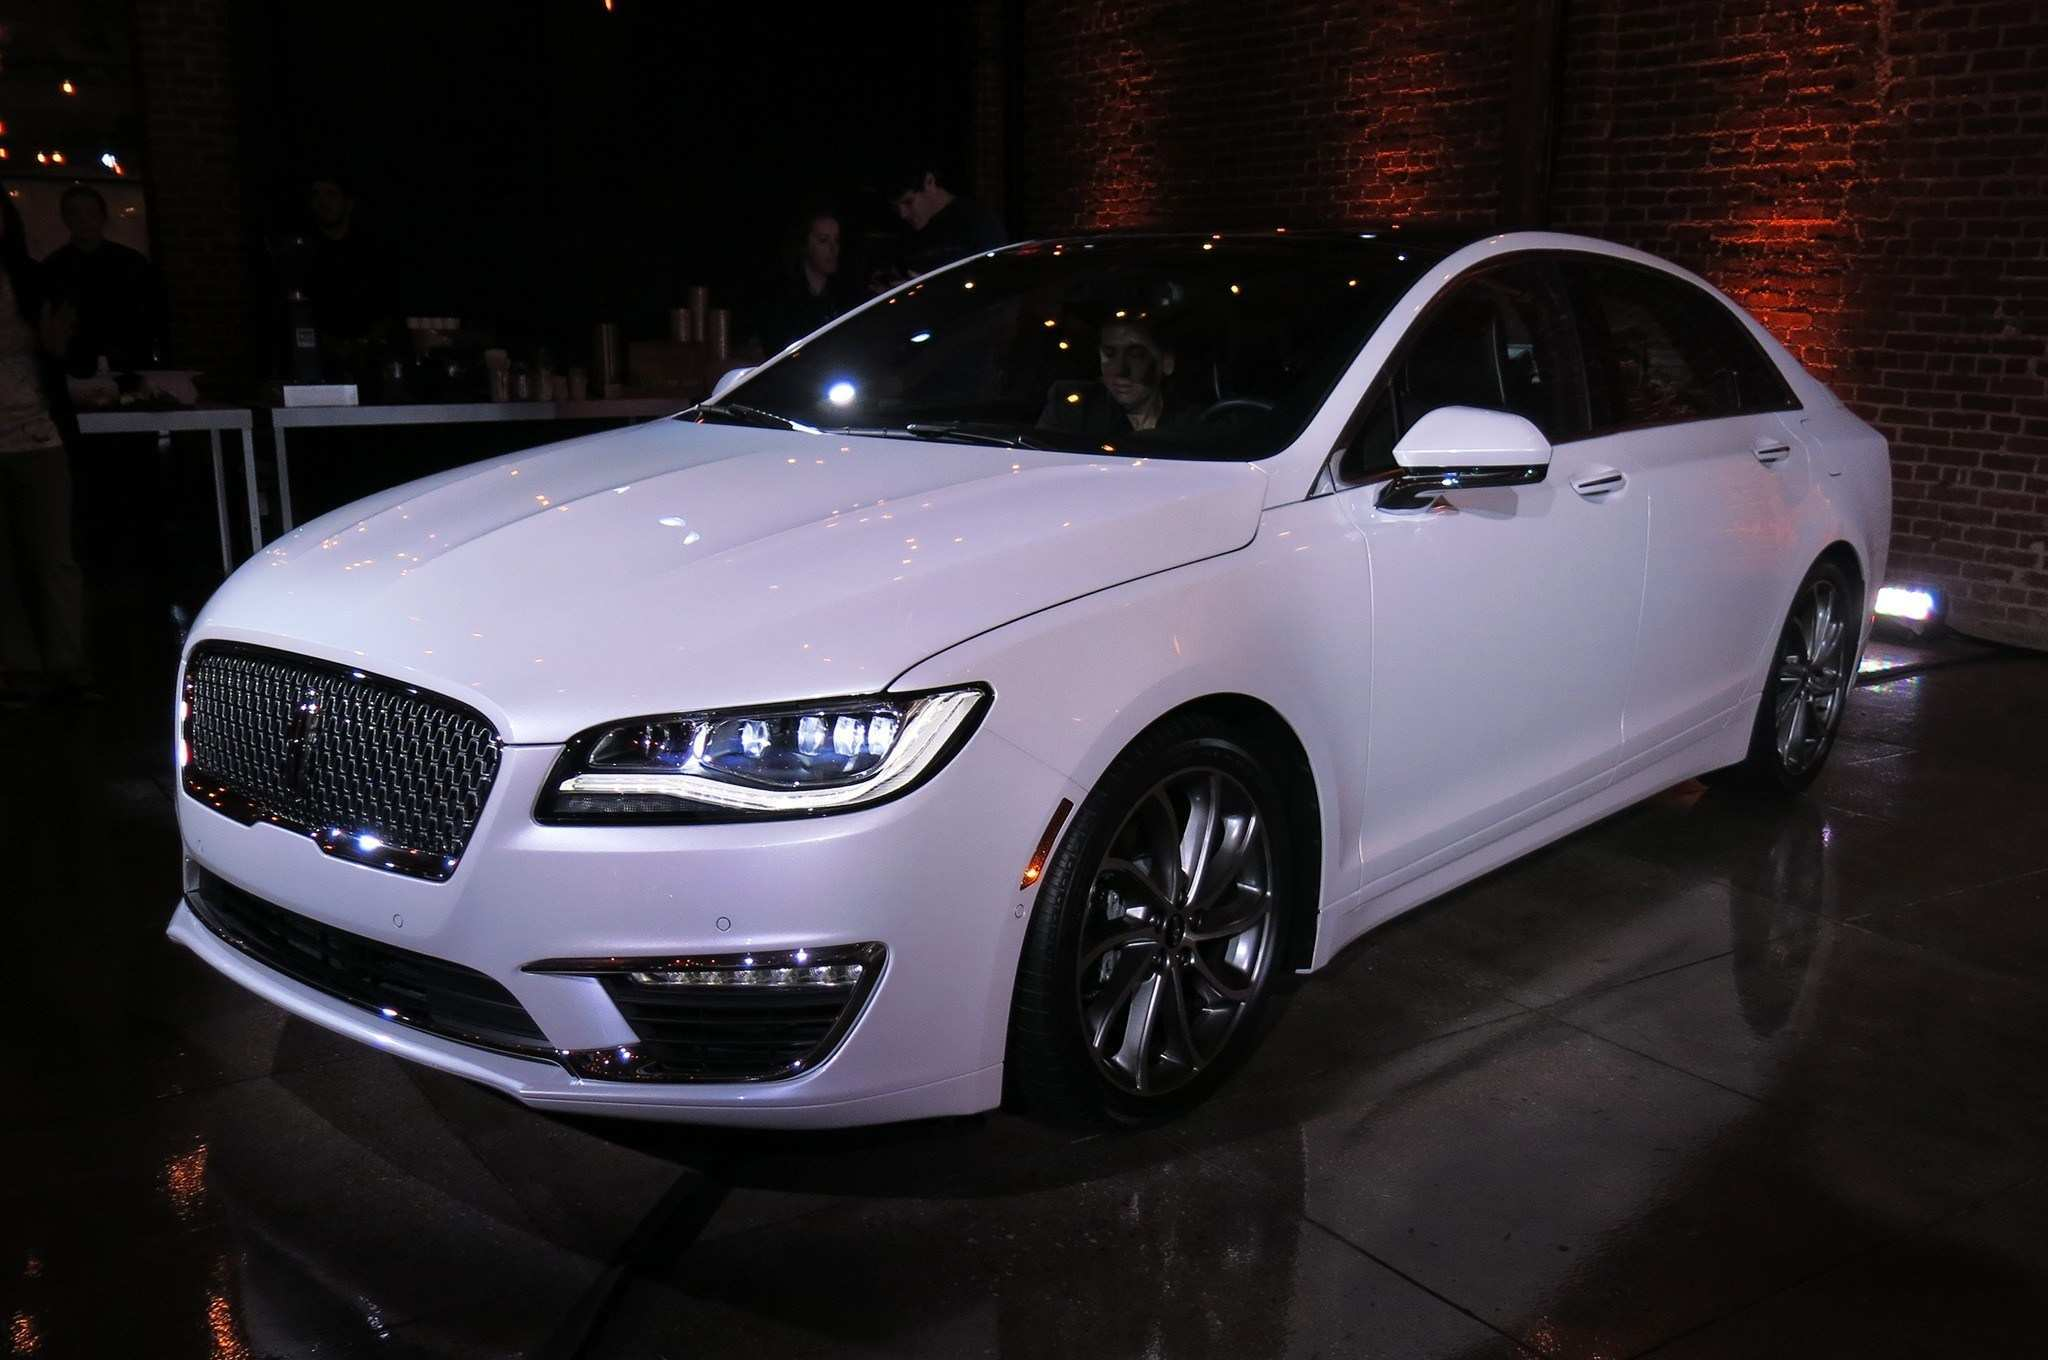 32 New 2020 Spy Shots Lincoln Mkz Sedan Specs And Review